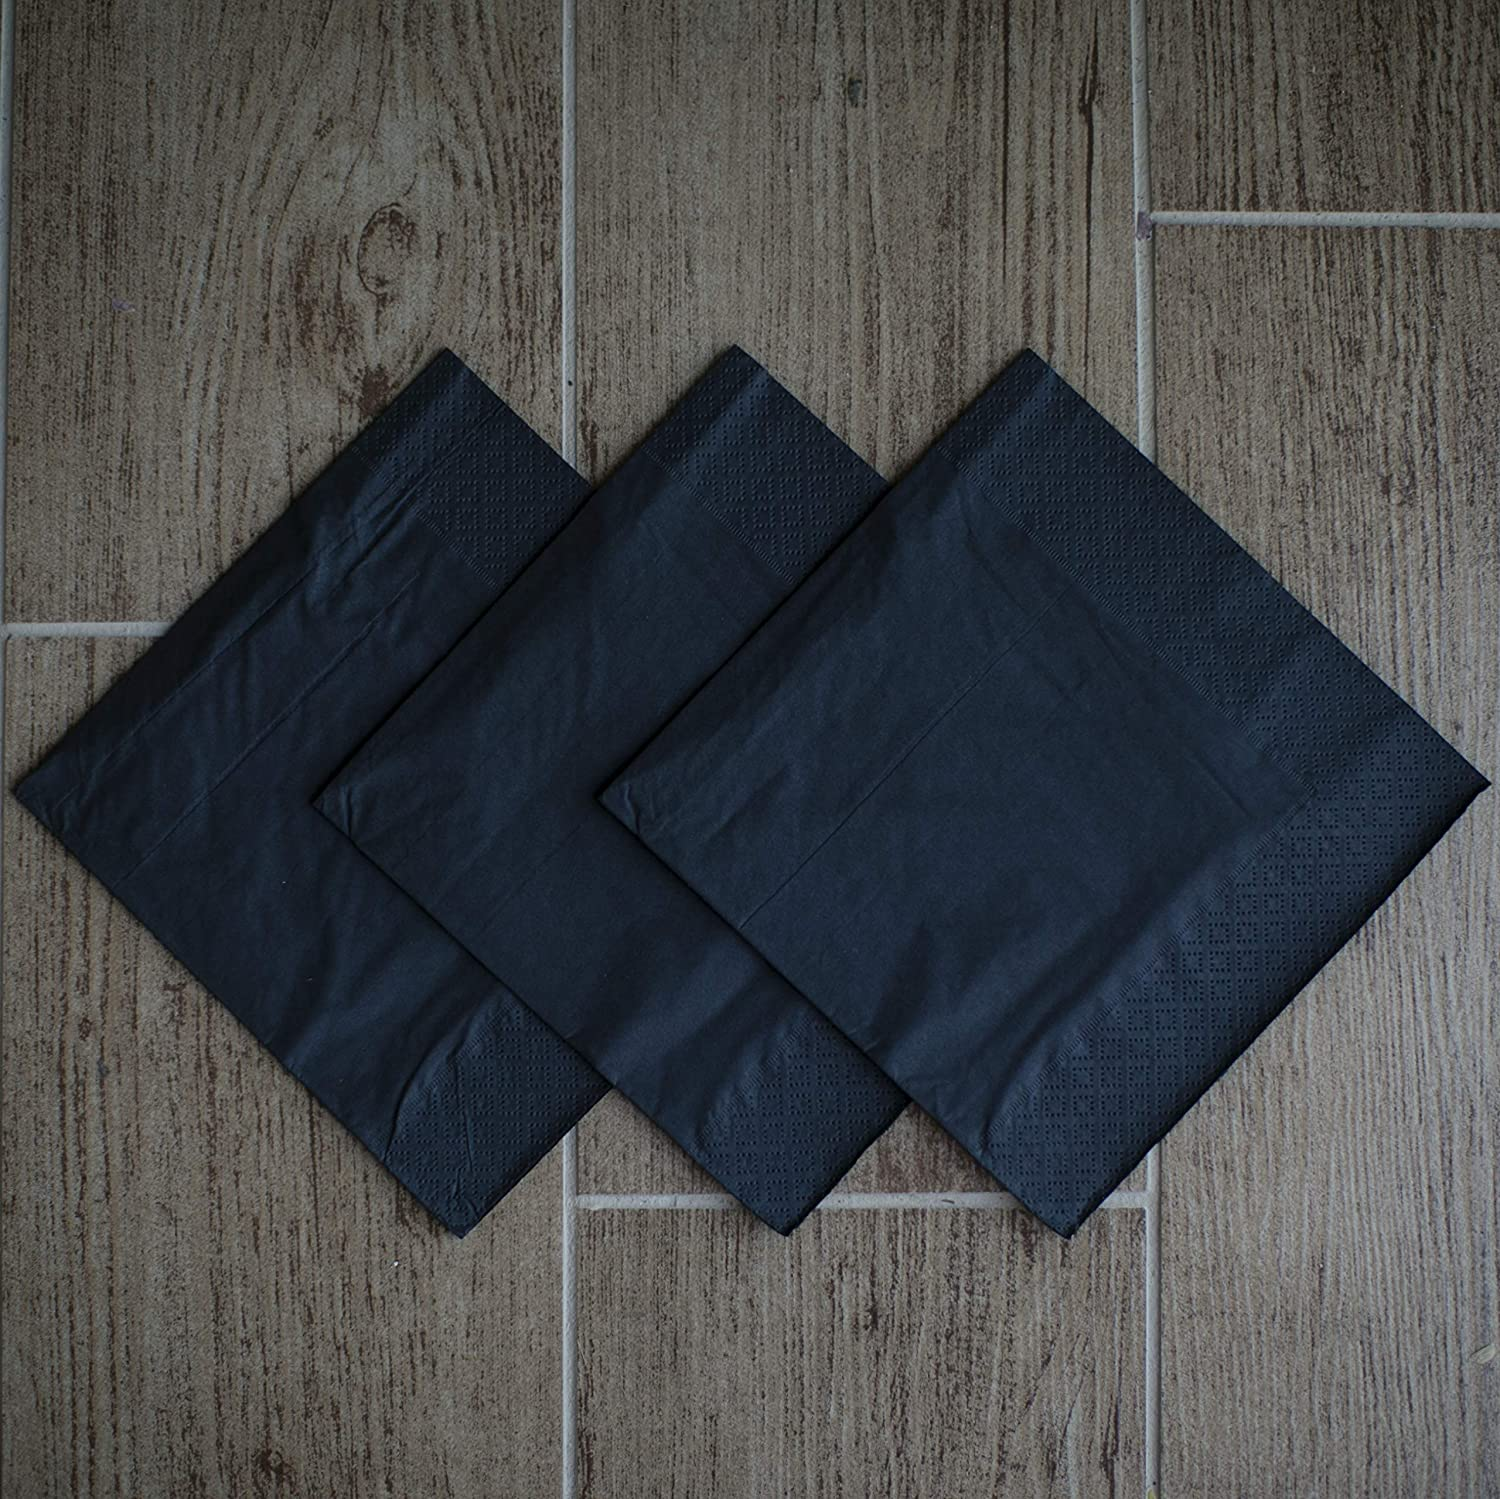 Paper Tissue Napkins 3-ply 13x13 in with print Made in Europe. 20//pkg pack Birthday Black Intense Tissue Home and Restaurant Perfect for Party